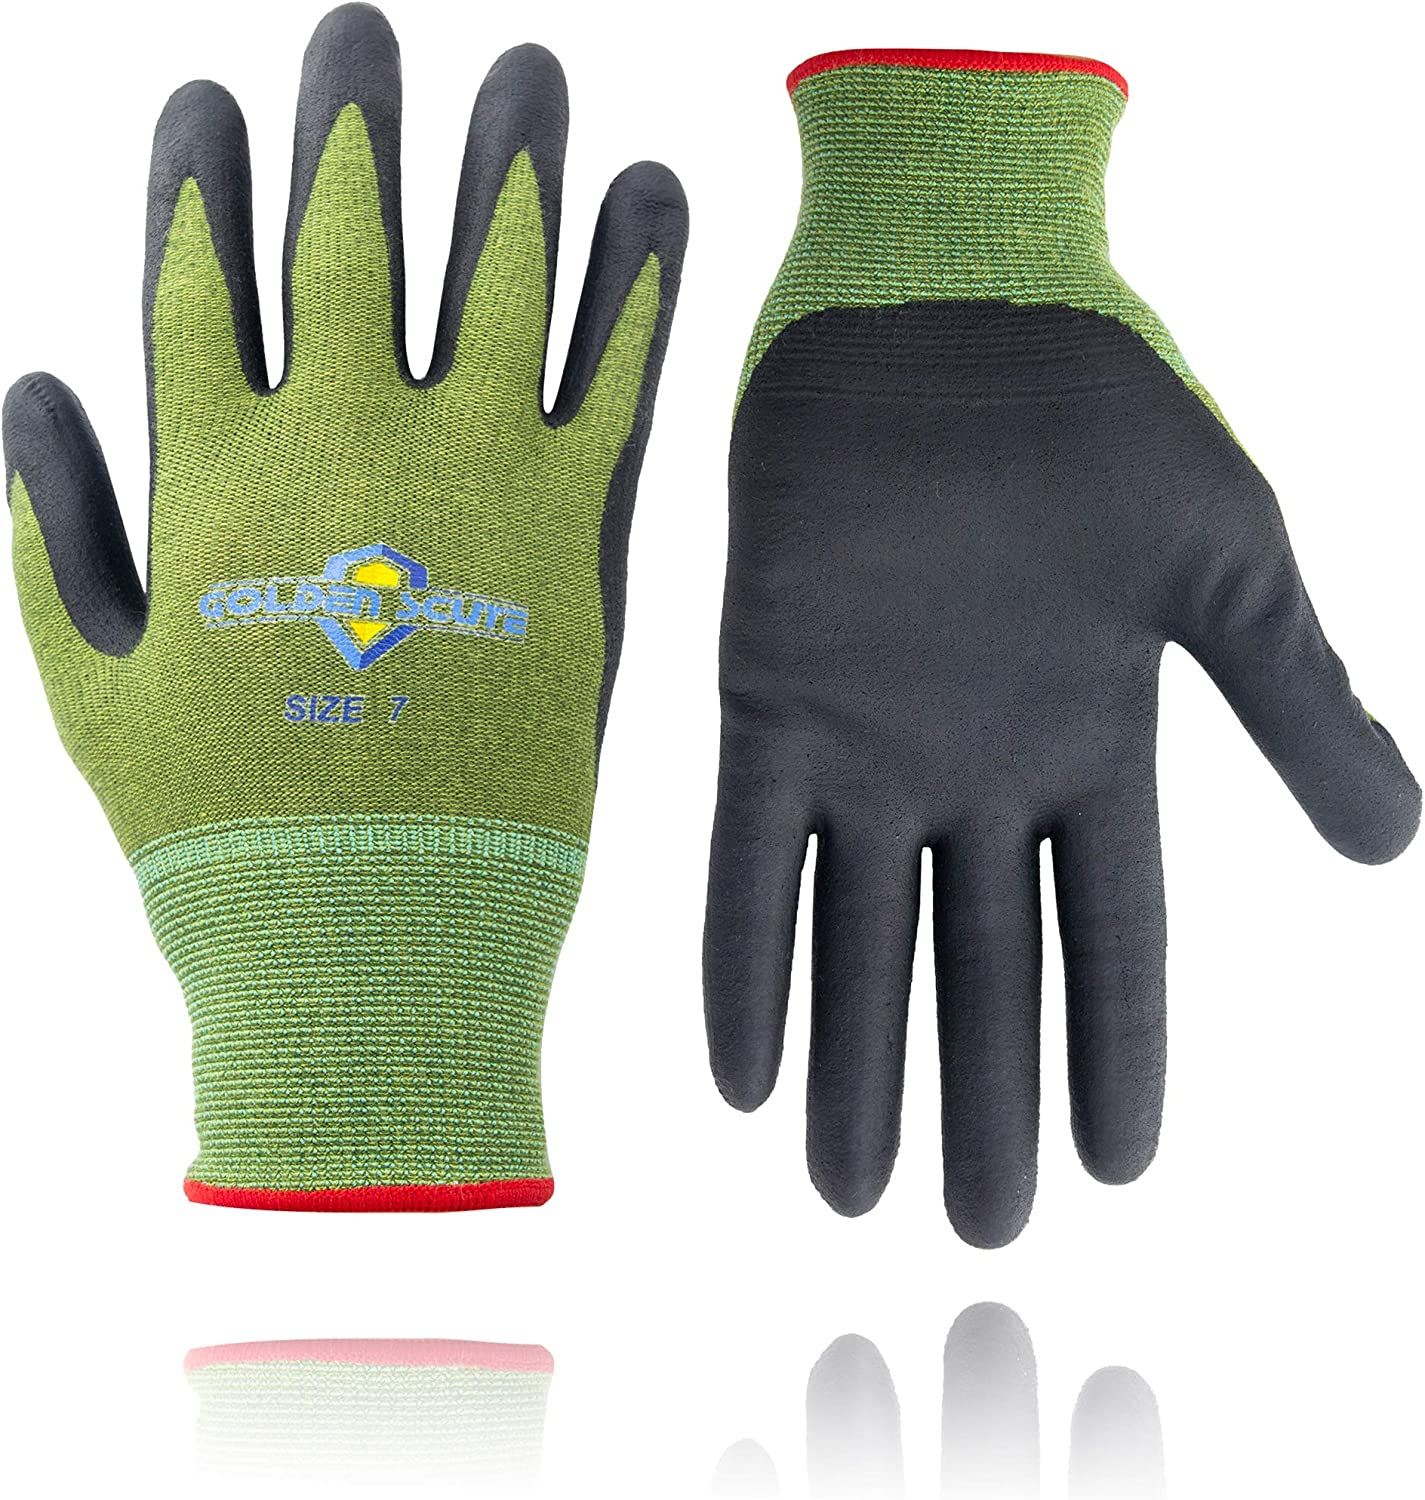 Golden Scute Men Women Bamboo Gardening Gloves with Nitrile Coating Outdoor Touchscreen Safety Working Gloves